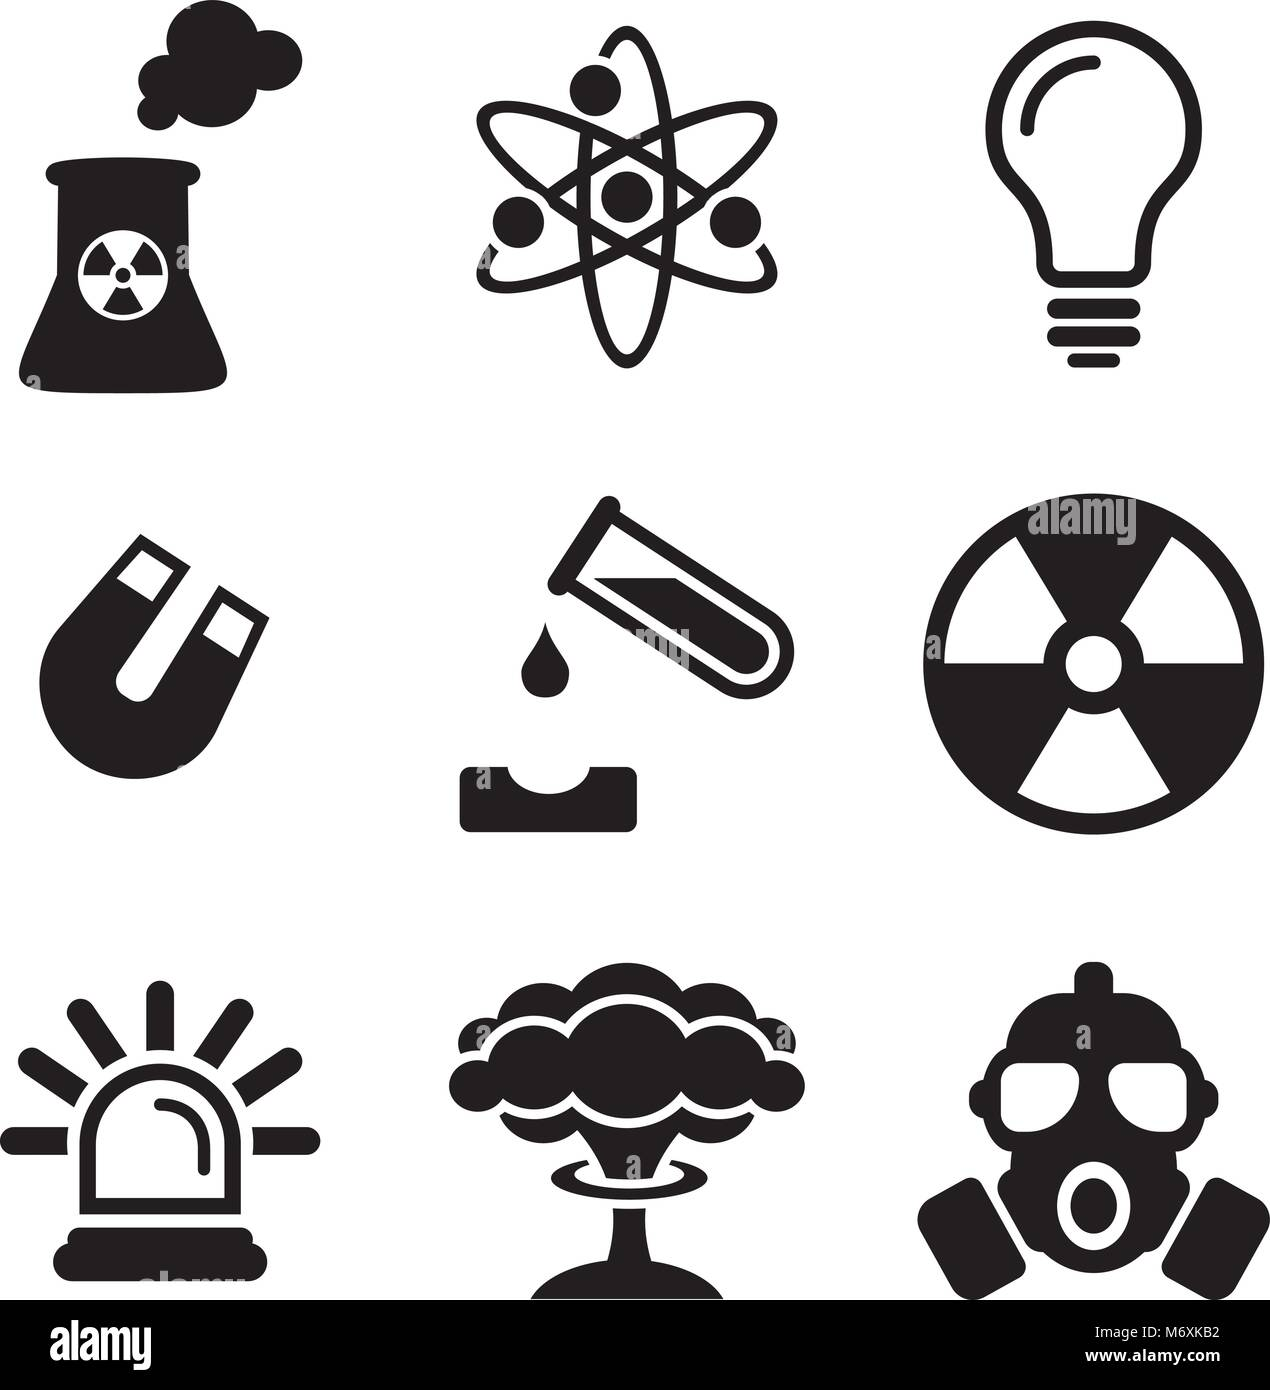 Nuclear Power Plant Icons - Stock Vector